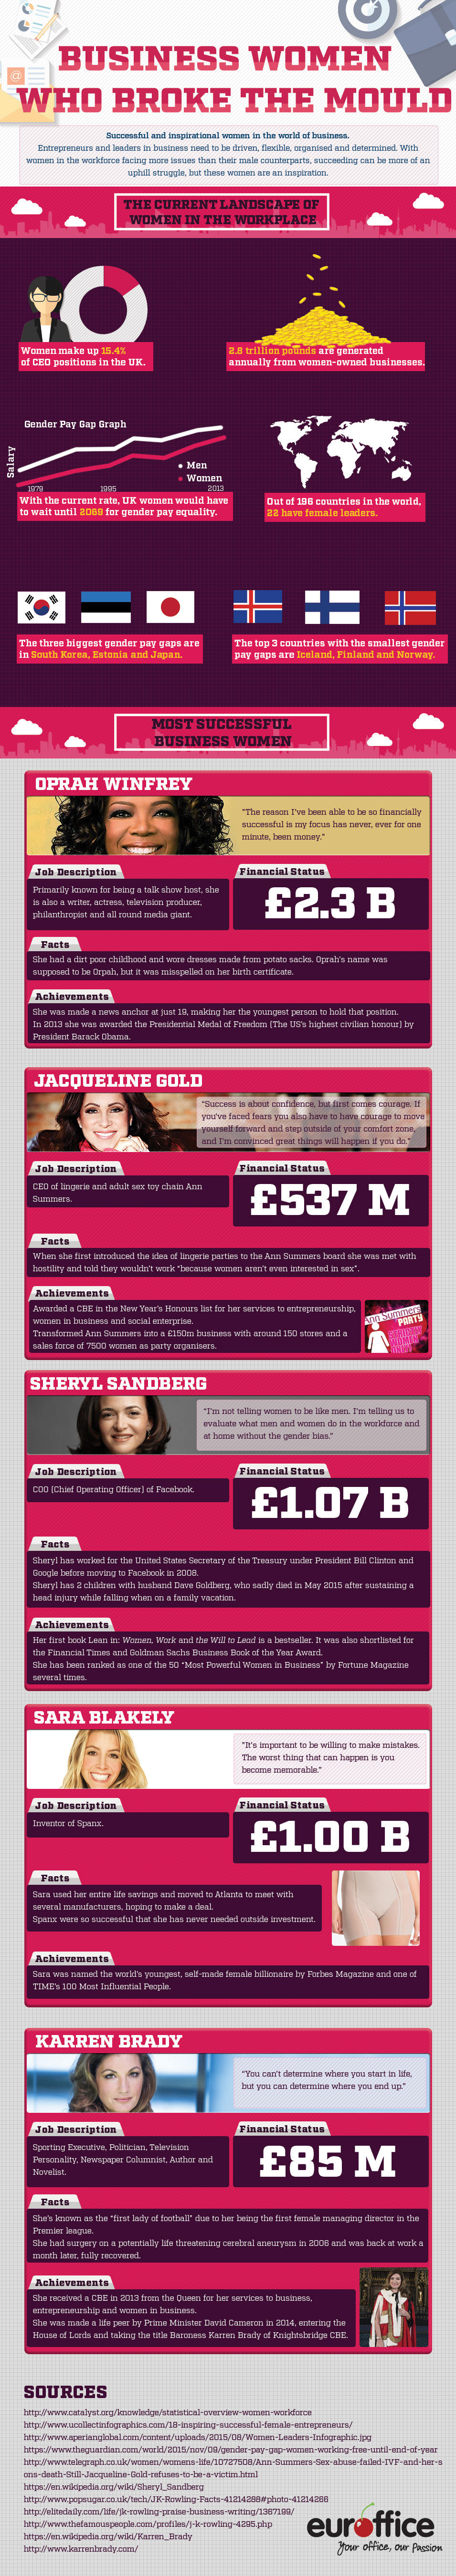 Businesswomen Who Broke The Mould [Infographic]